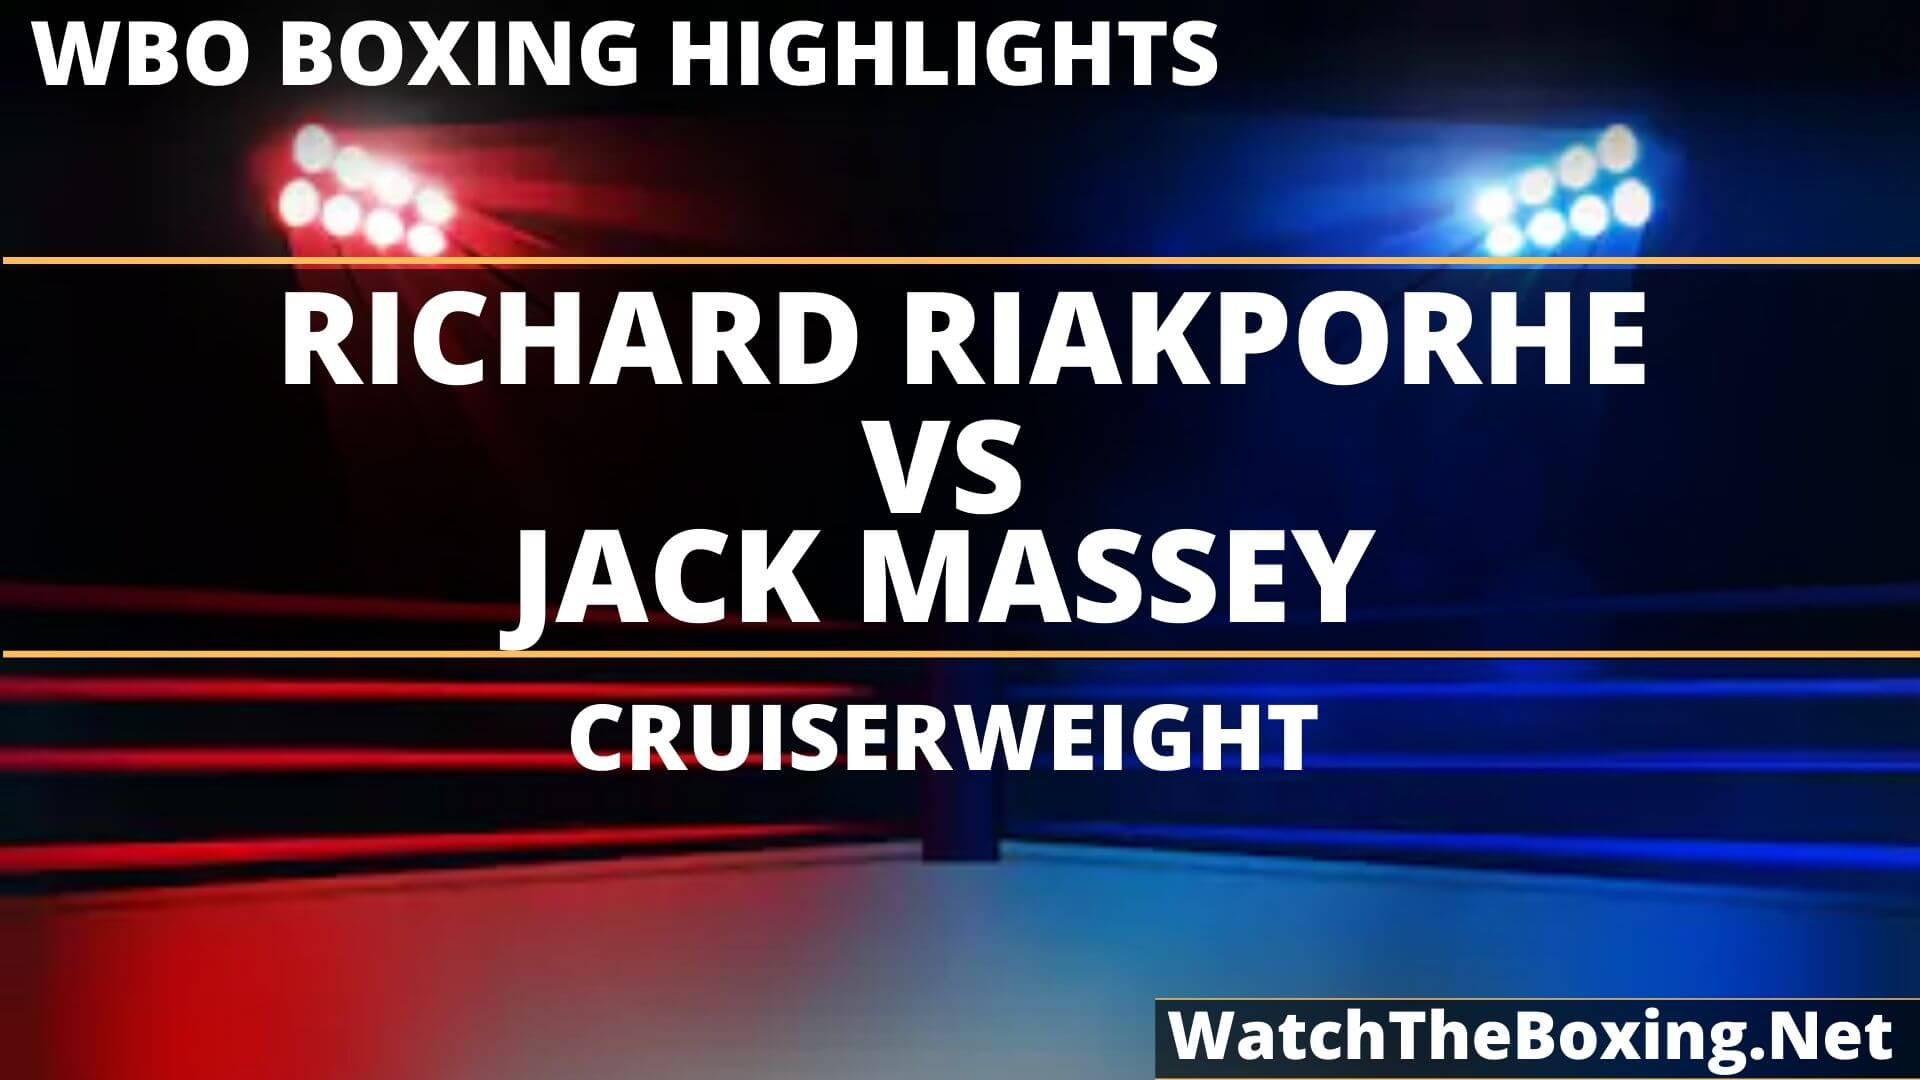 Richard Riakporhe Vs Jack Massey Highlights 2019